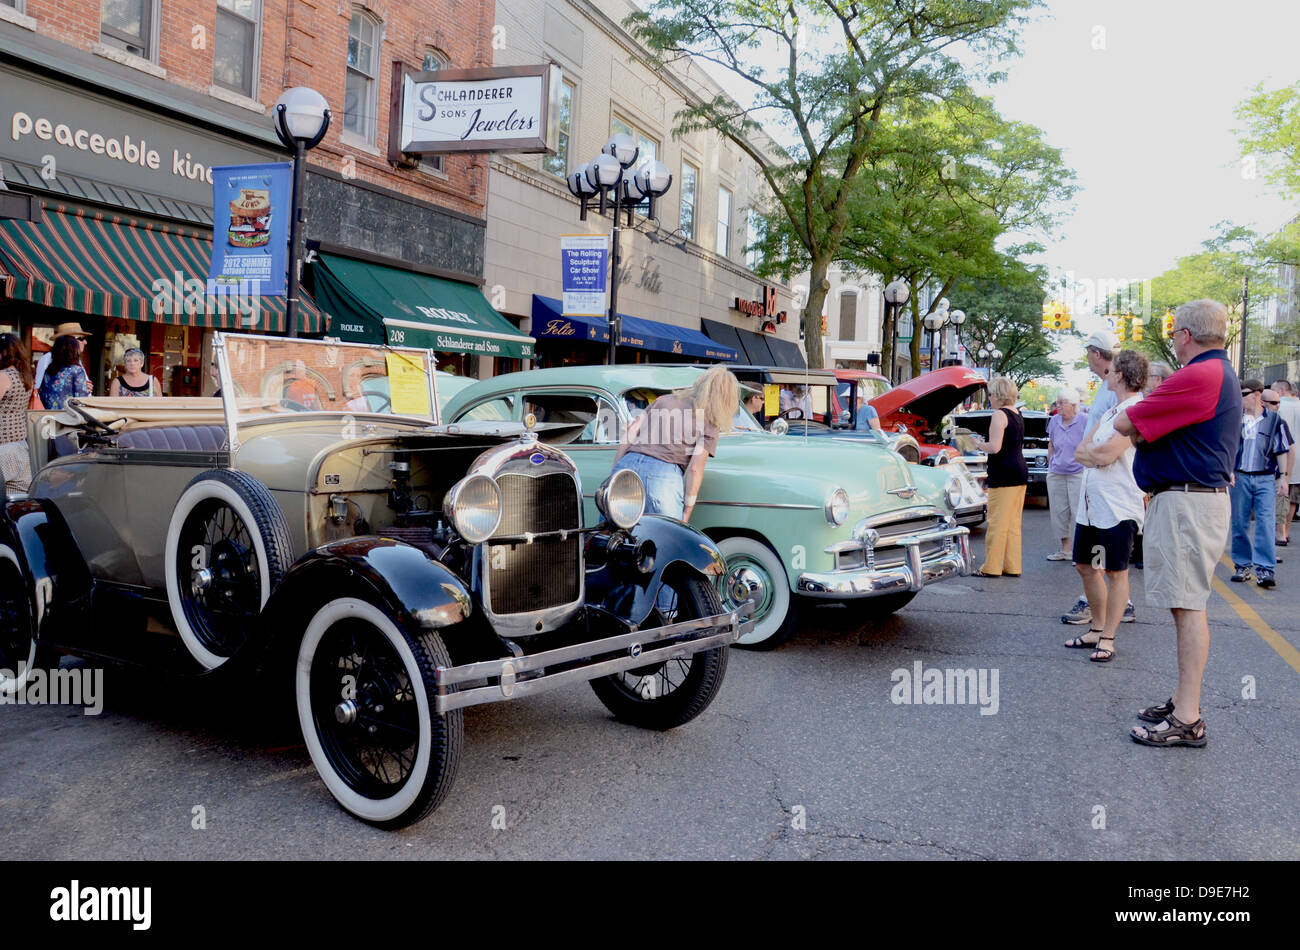 1928 Ford Model A and 1950 Chevrolet 2d Deluxe at the Rolling Sculpture car show July 13, 2012 in Ann Arbor, Michigan - Stock Image